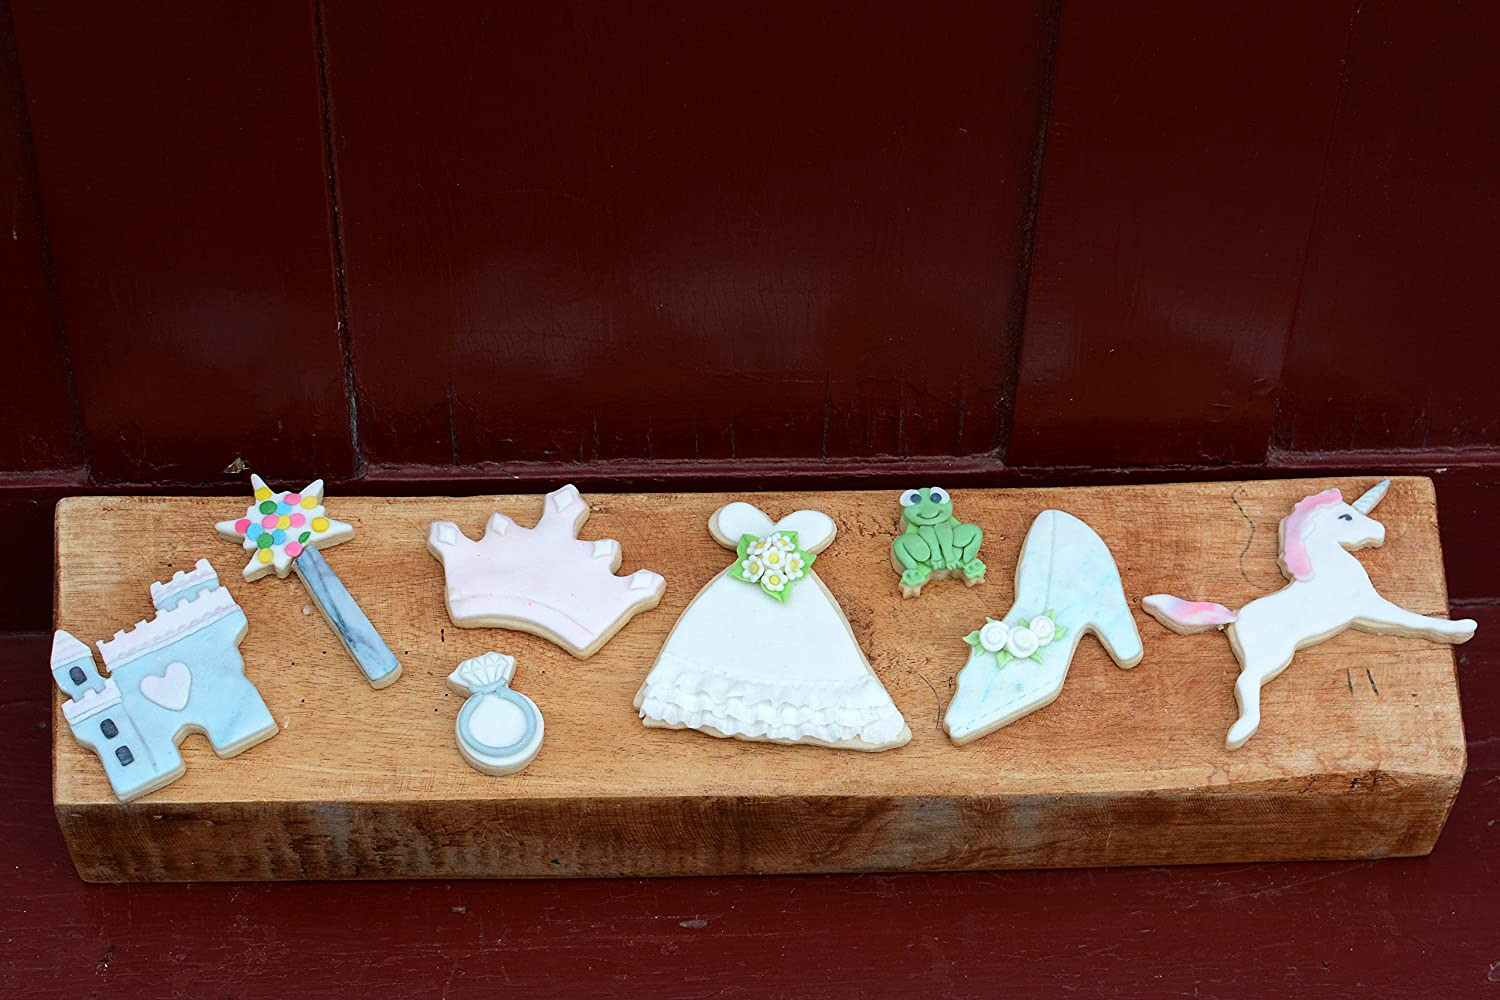 Slipper Gown Frog Wand Ring R/&M International X0119 Little Princess Cookie Cutters 8-Piece Set Unicorn Crown